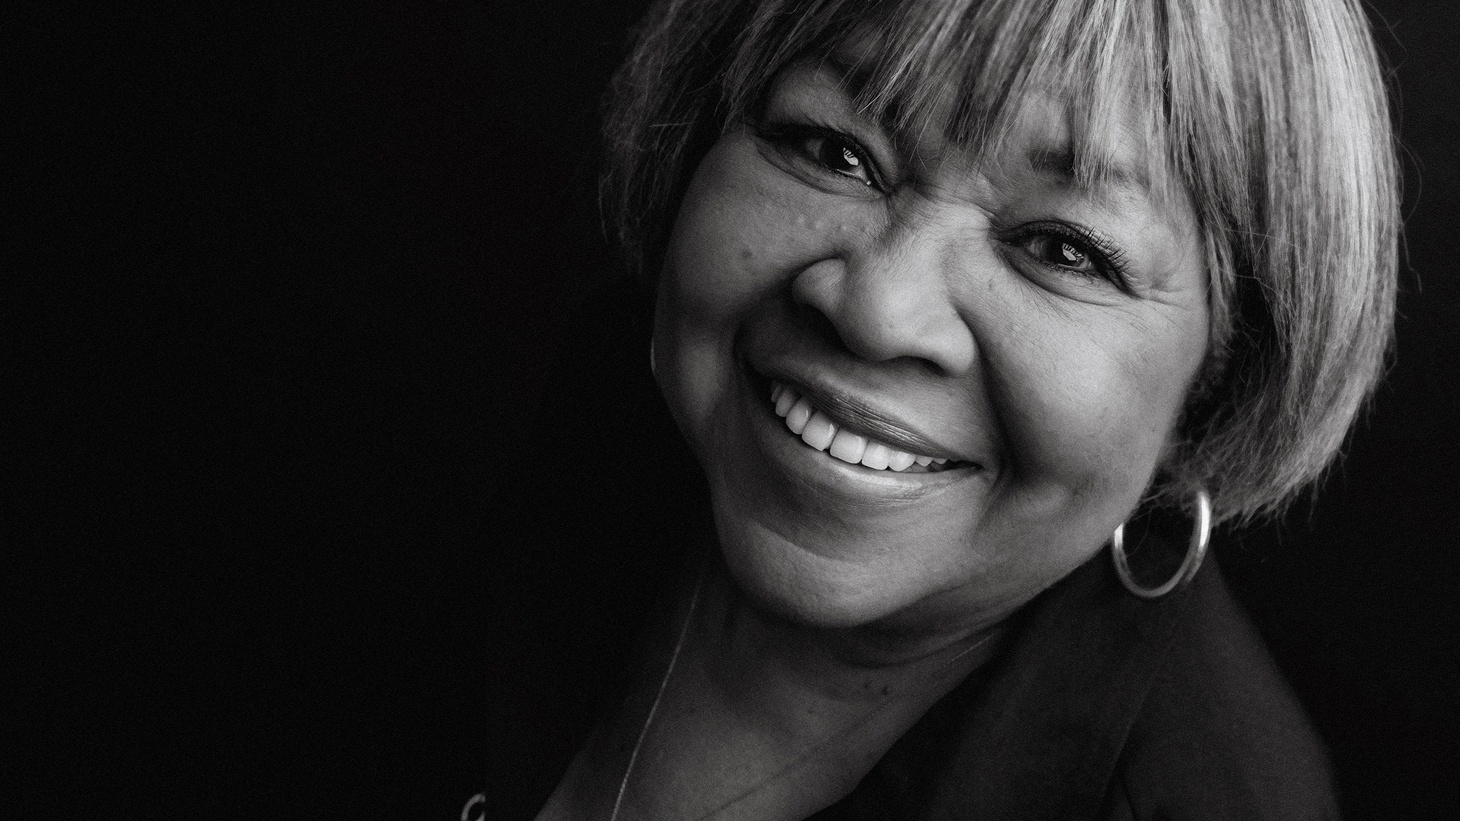 """July 10th marks legendary singer and activist Mavis Staple's 80th birthday. To celebrate, she's released a new album that's written and produced by Ben Harper. We Get By kicks off with """"Change,"""" a powerful anthem that makes us think."""